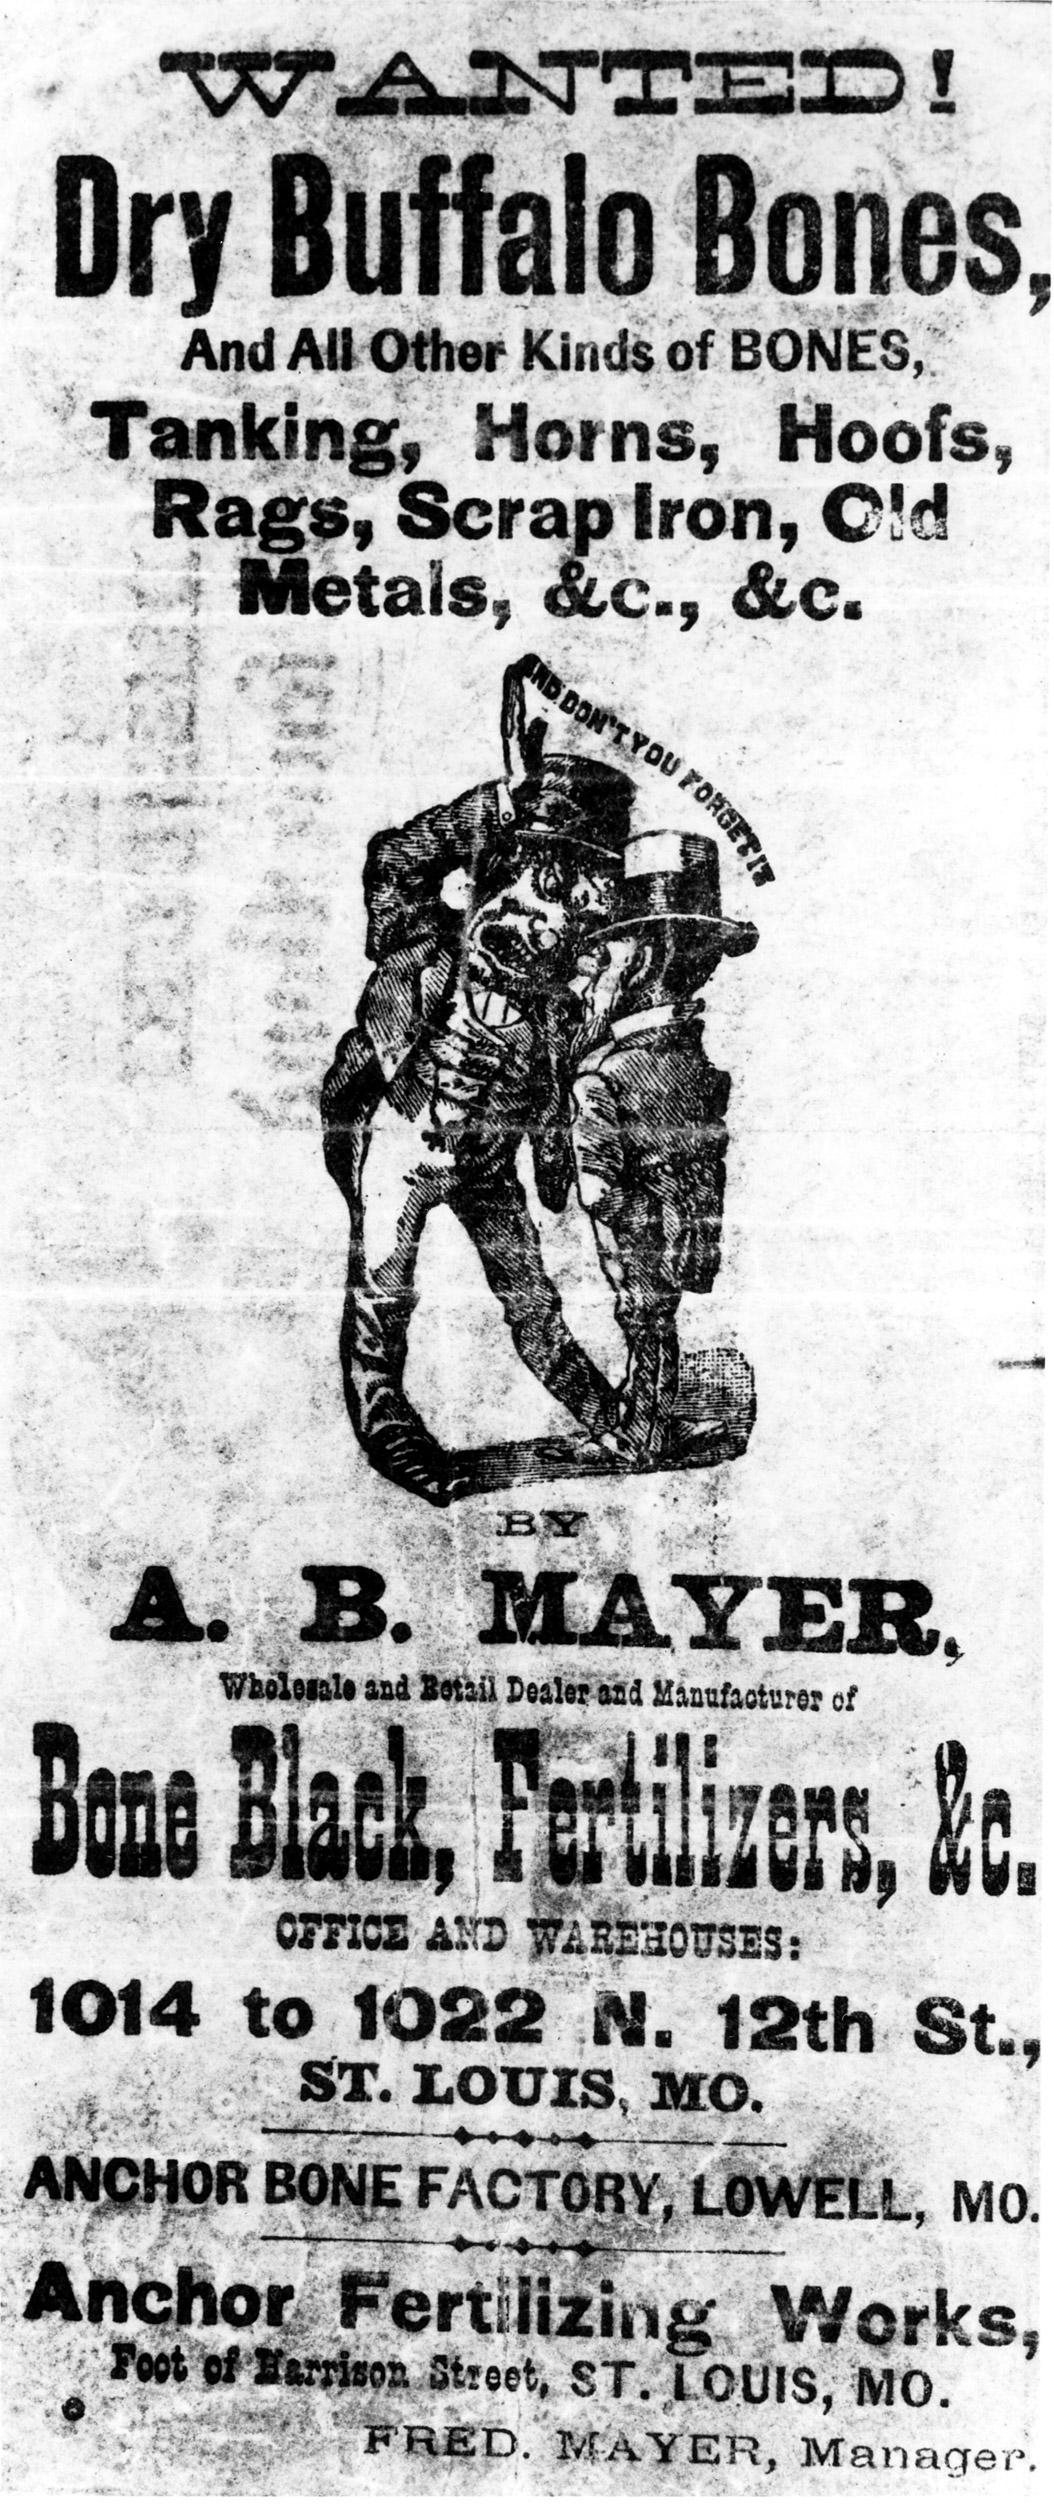 Newspaper Ad for Buffalo bones